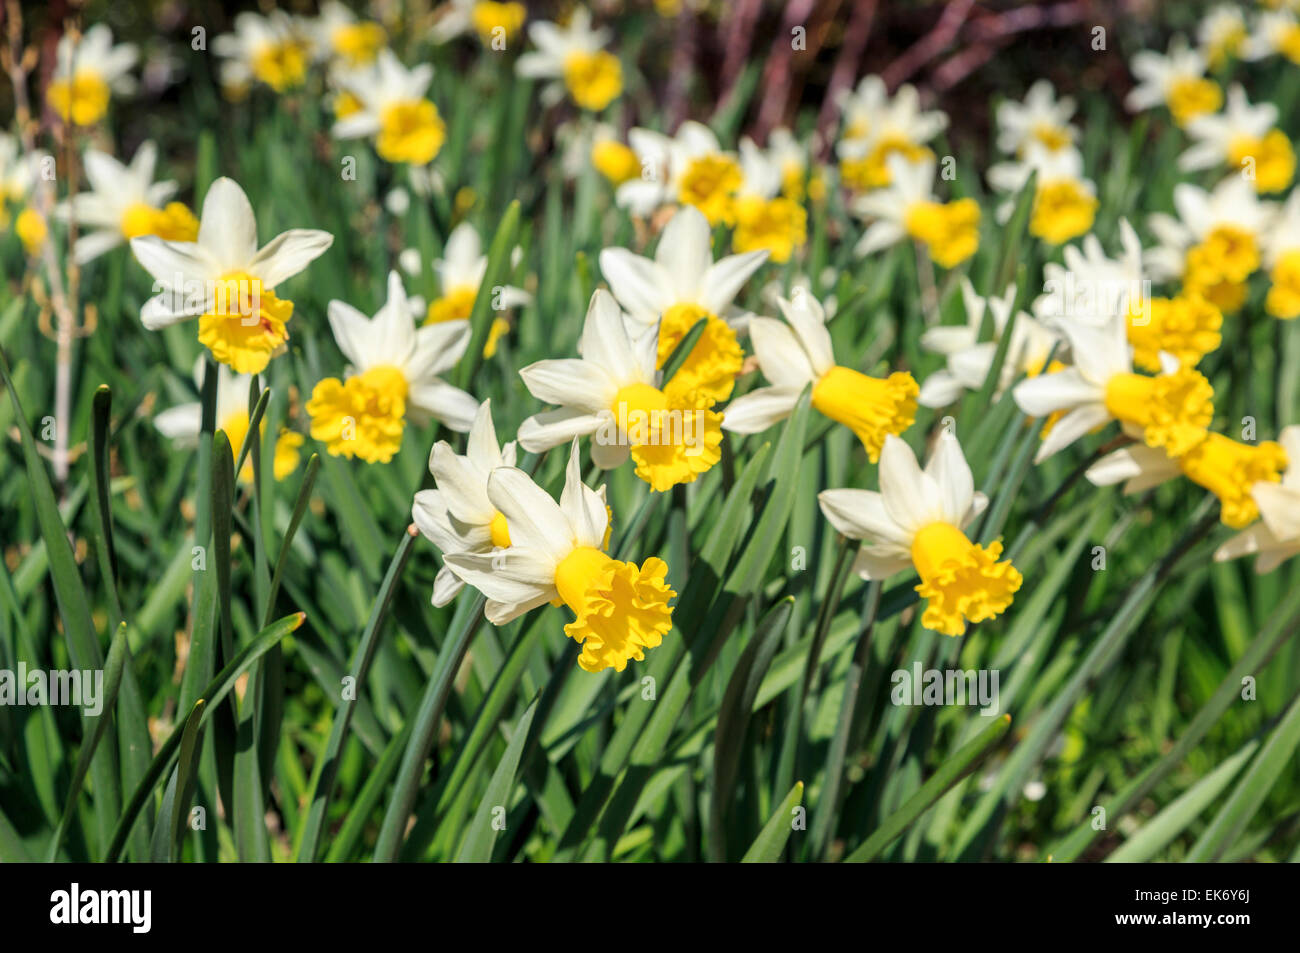 Narcissus 'Wisley', a bicoloured daffodil with white petals and bright yellow frilly trumpet, named for the RHS Stock Photo